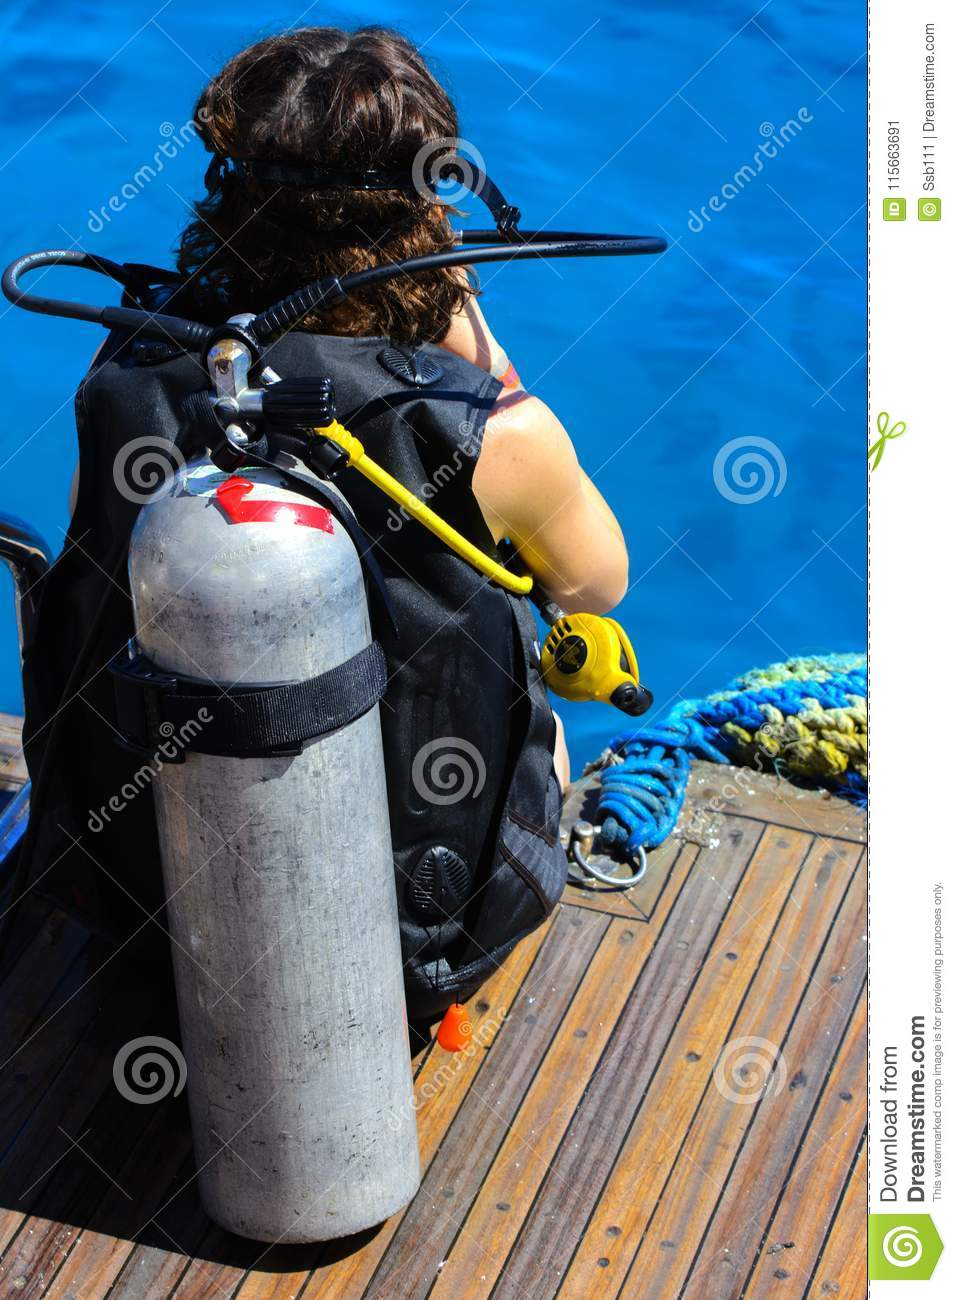 A girl at the stern of a ship in a diving suit prepares to immerse herself in a transparent and turquoise Red Sea